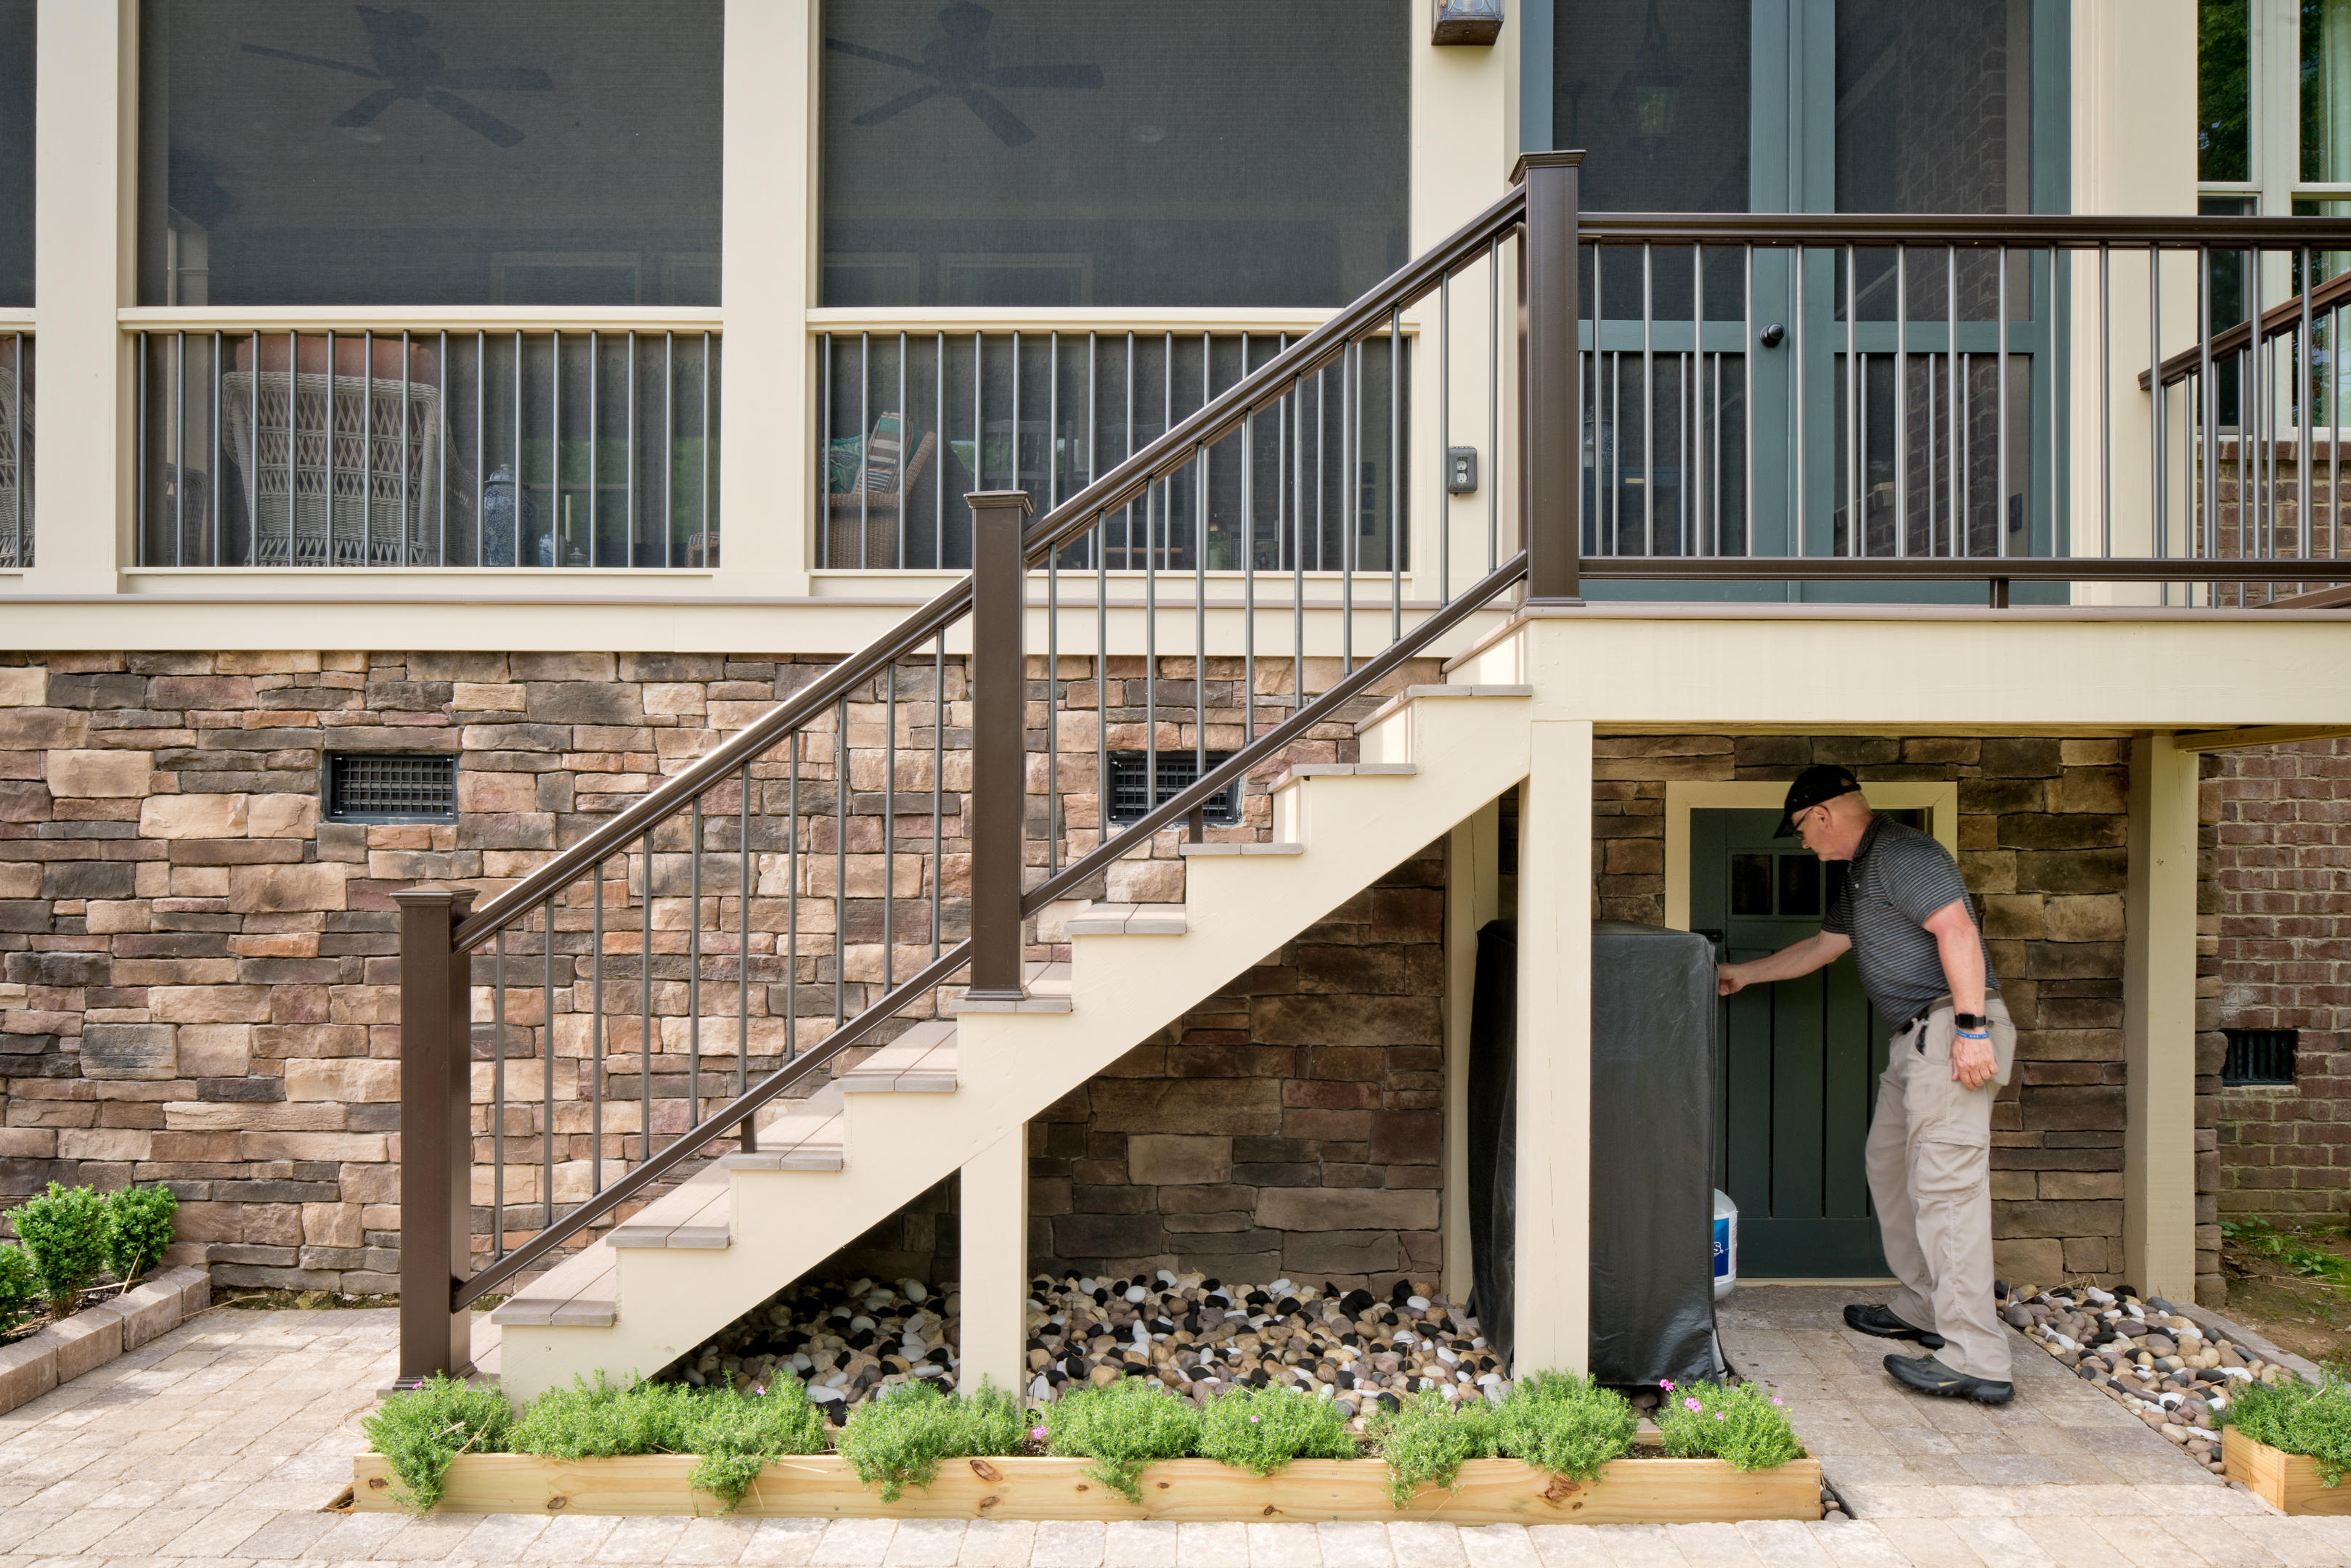 porch-screened-staircase-door-storage-brentwood tn & porch-screened-staircase-door-storage-brentwood tn - The Porch ...